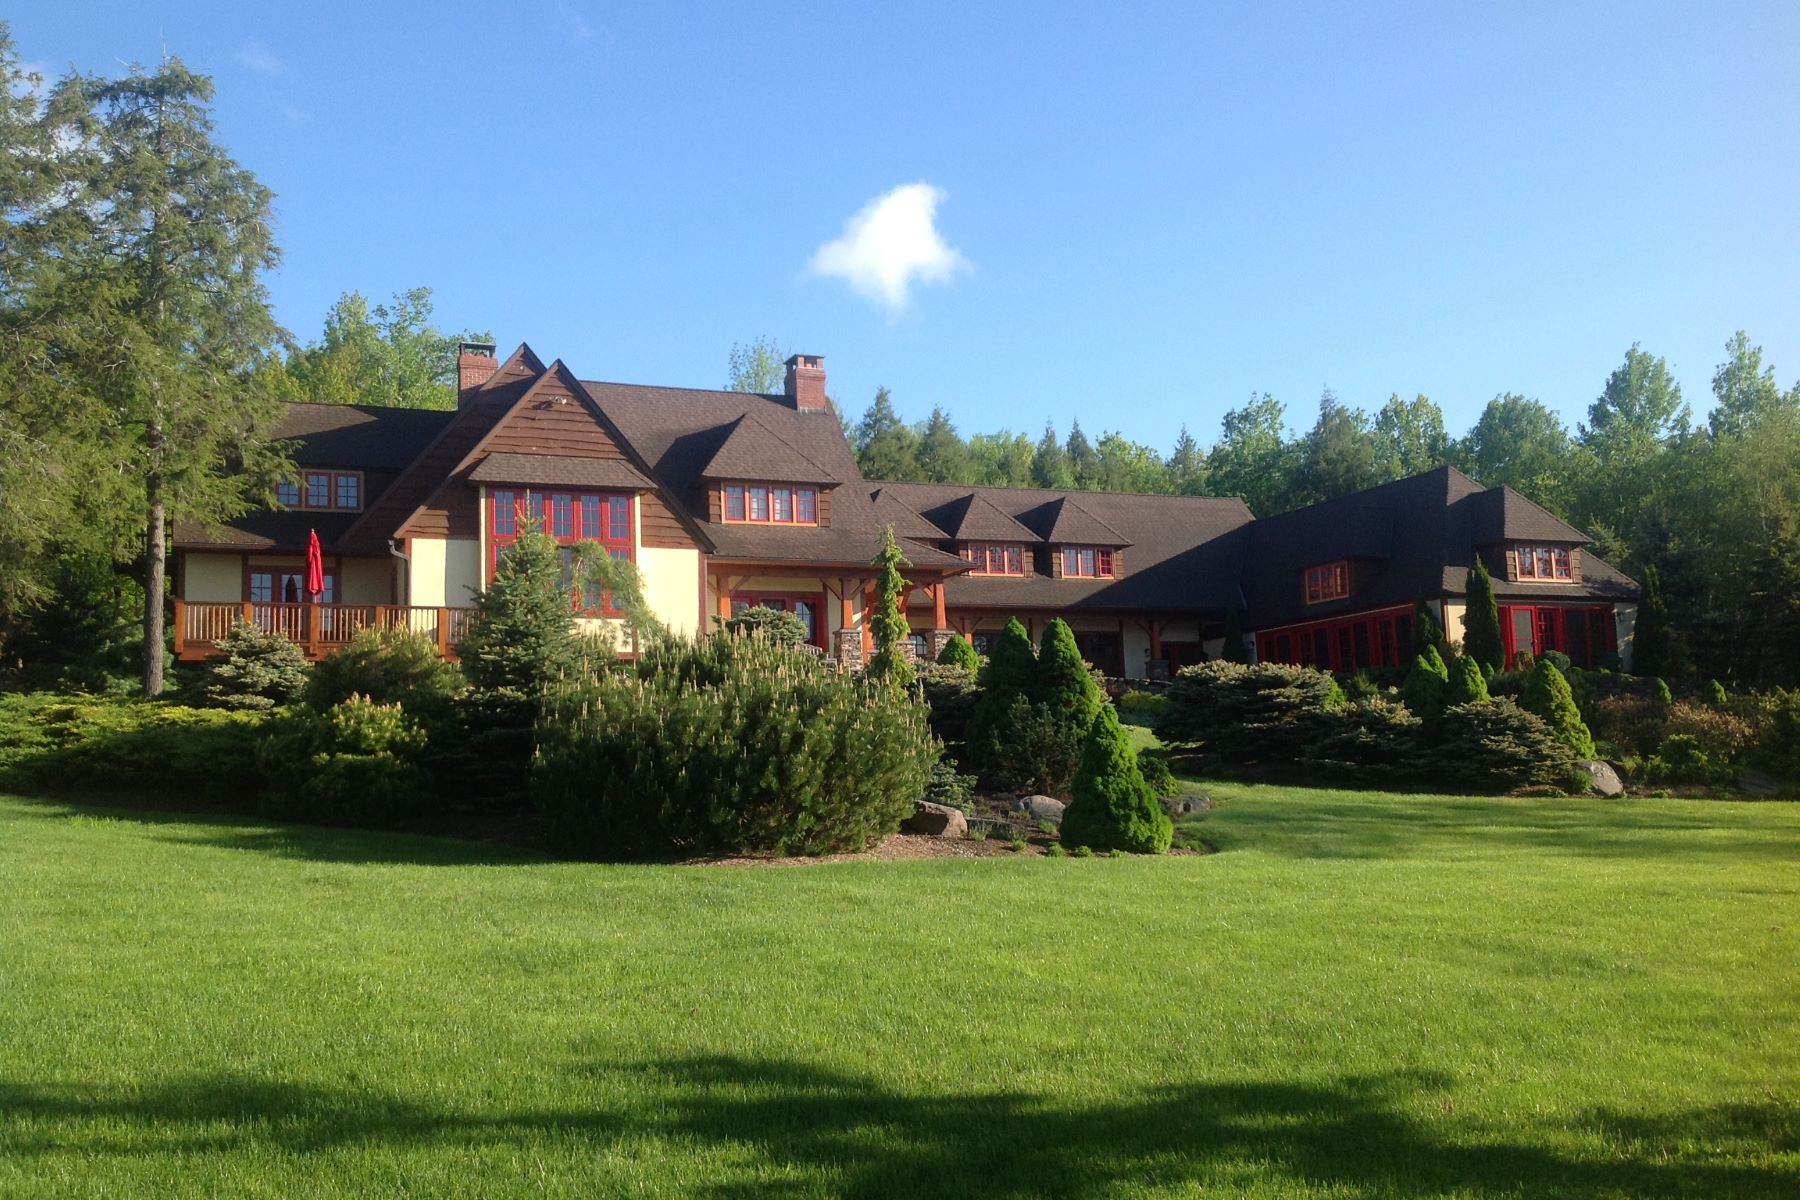 Single Family Home for Sale at Hunter Mountain Retreat 54 Blackberry Dr. Jewett, New York 12444 United States